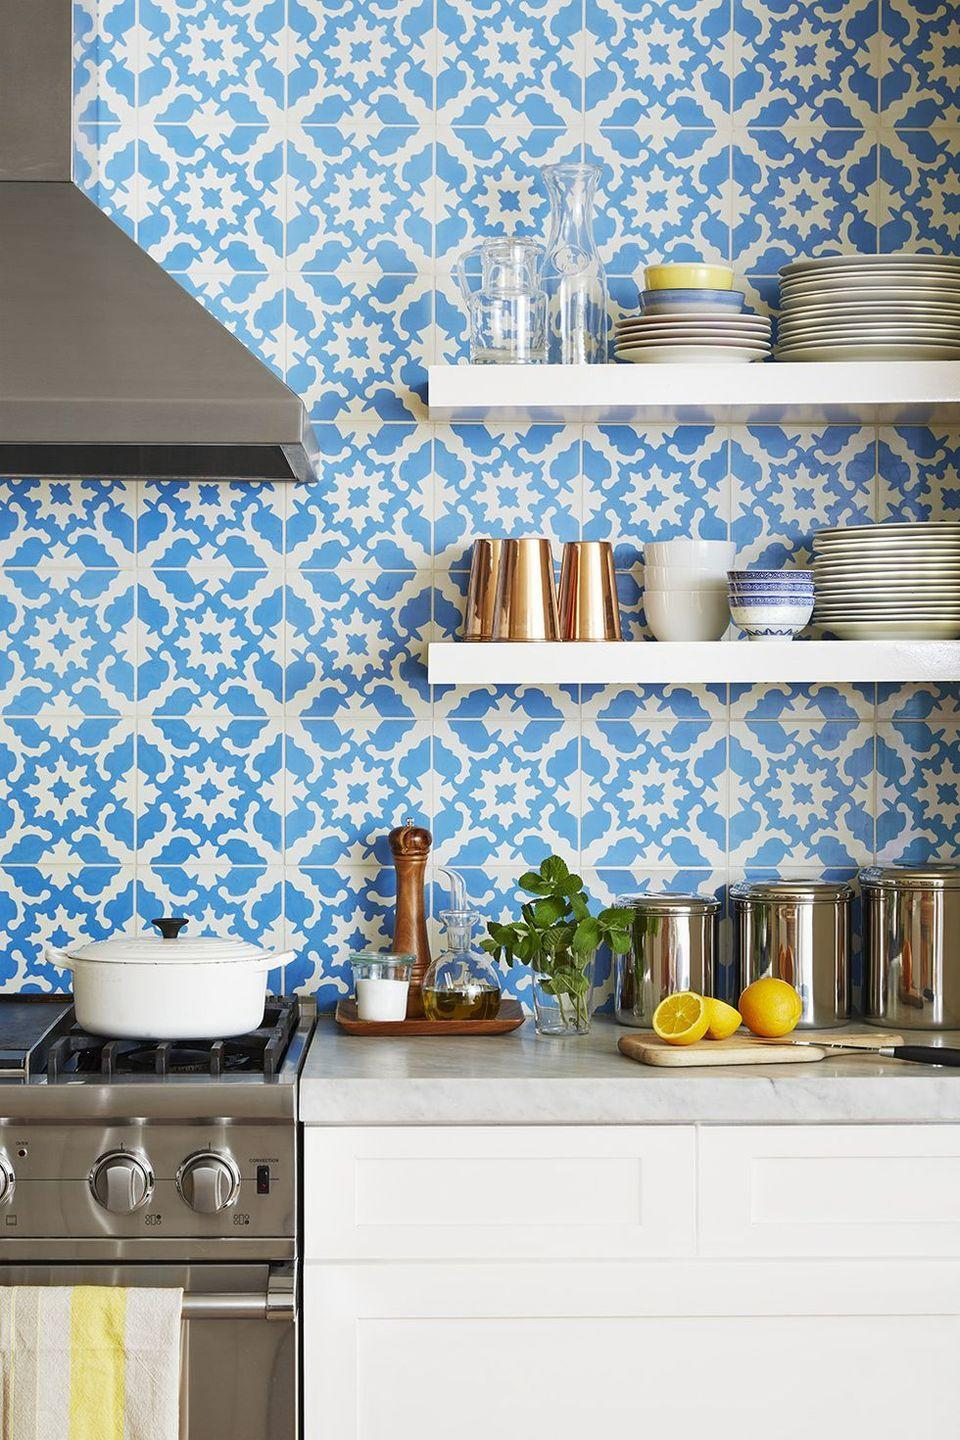 "<p>If you live for daring looks, consider revamping your kitchen with a new <a href=""https://www.goodhousekeeping.com/home/decorating-ideas/g34742460/kitchen-backsplash-ideas/"" rel=""nofollow noopener"" target=""_blank"" data-ylk=""slk:patterned backsplash"" class=""link rapid-noclick-resp"">patterned backsplash</a> in a bold hue. If you don't have the money for a renovation job, try colorful kitchen accessories or dinnerware for a playful touch instead. </p>"